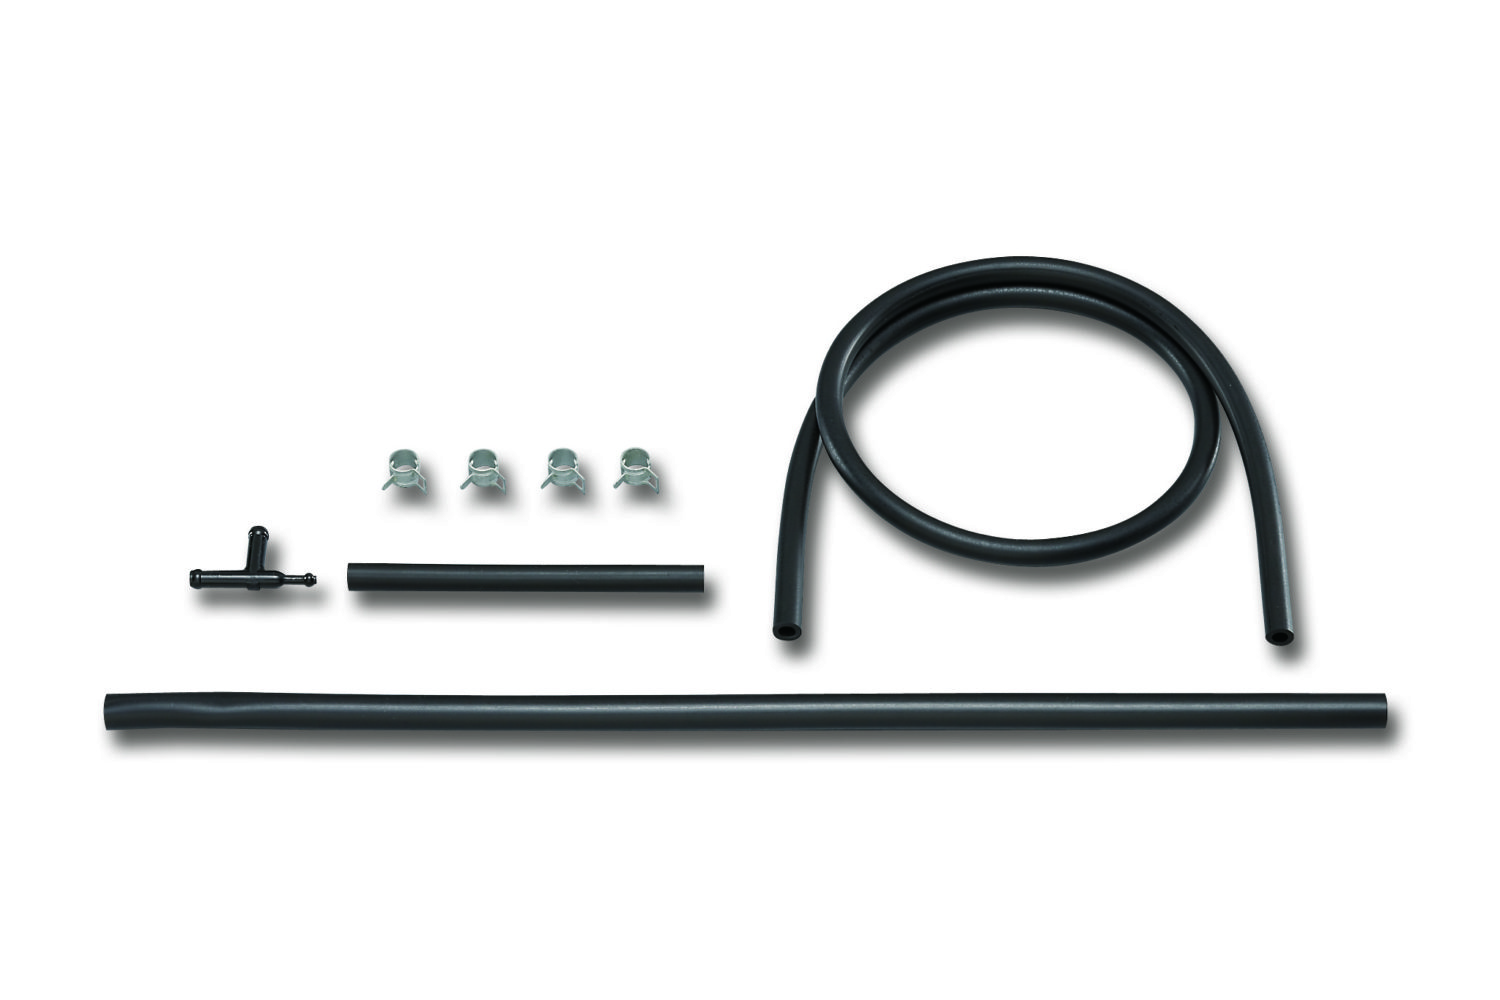 Installation Kit for Water Pressure Gauge